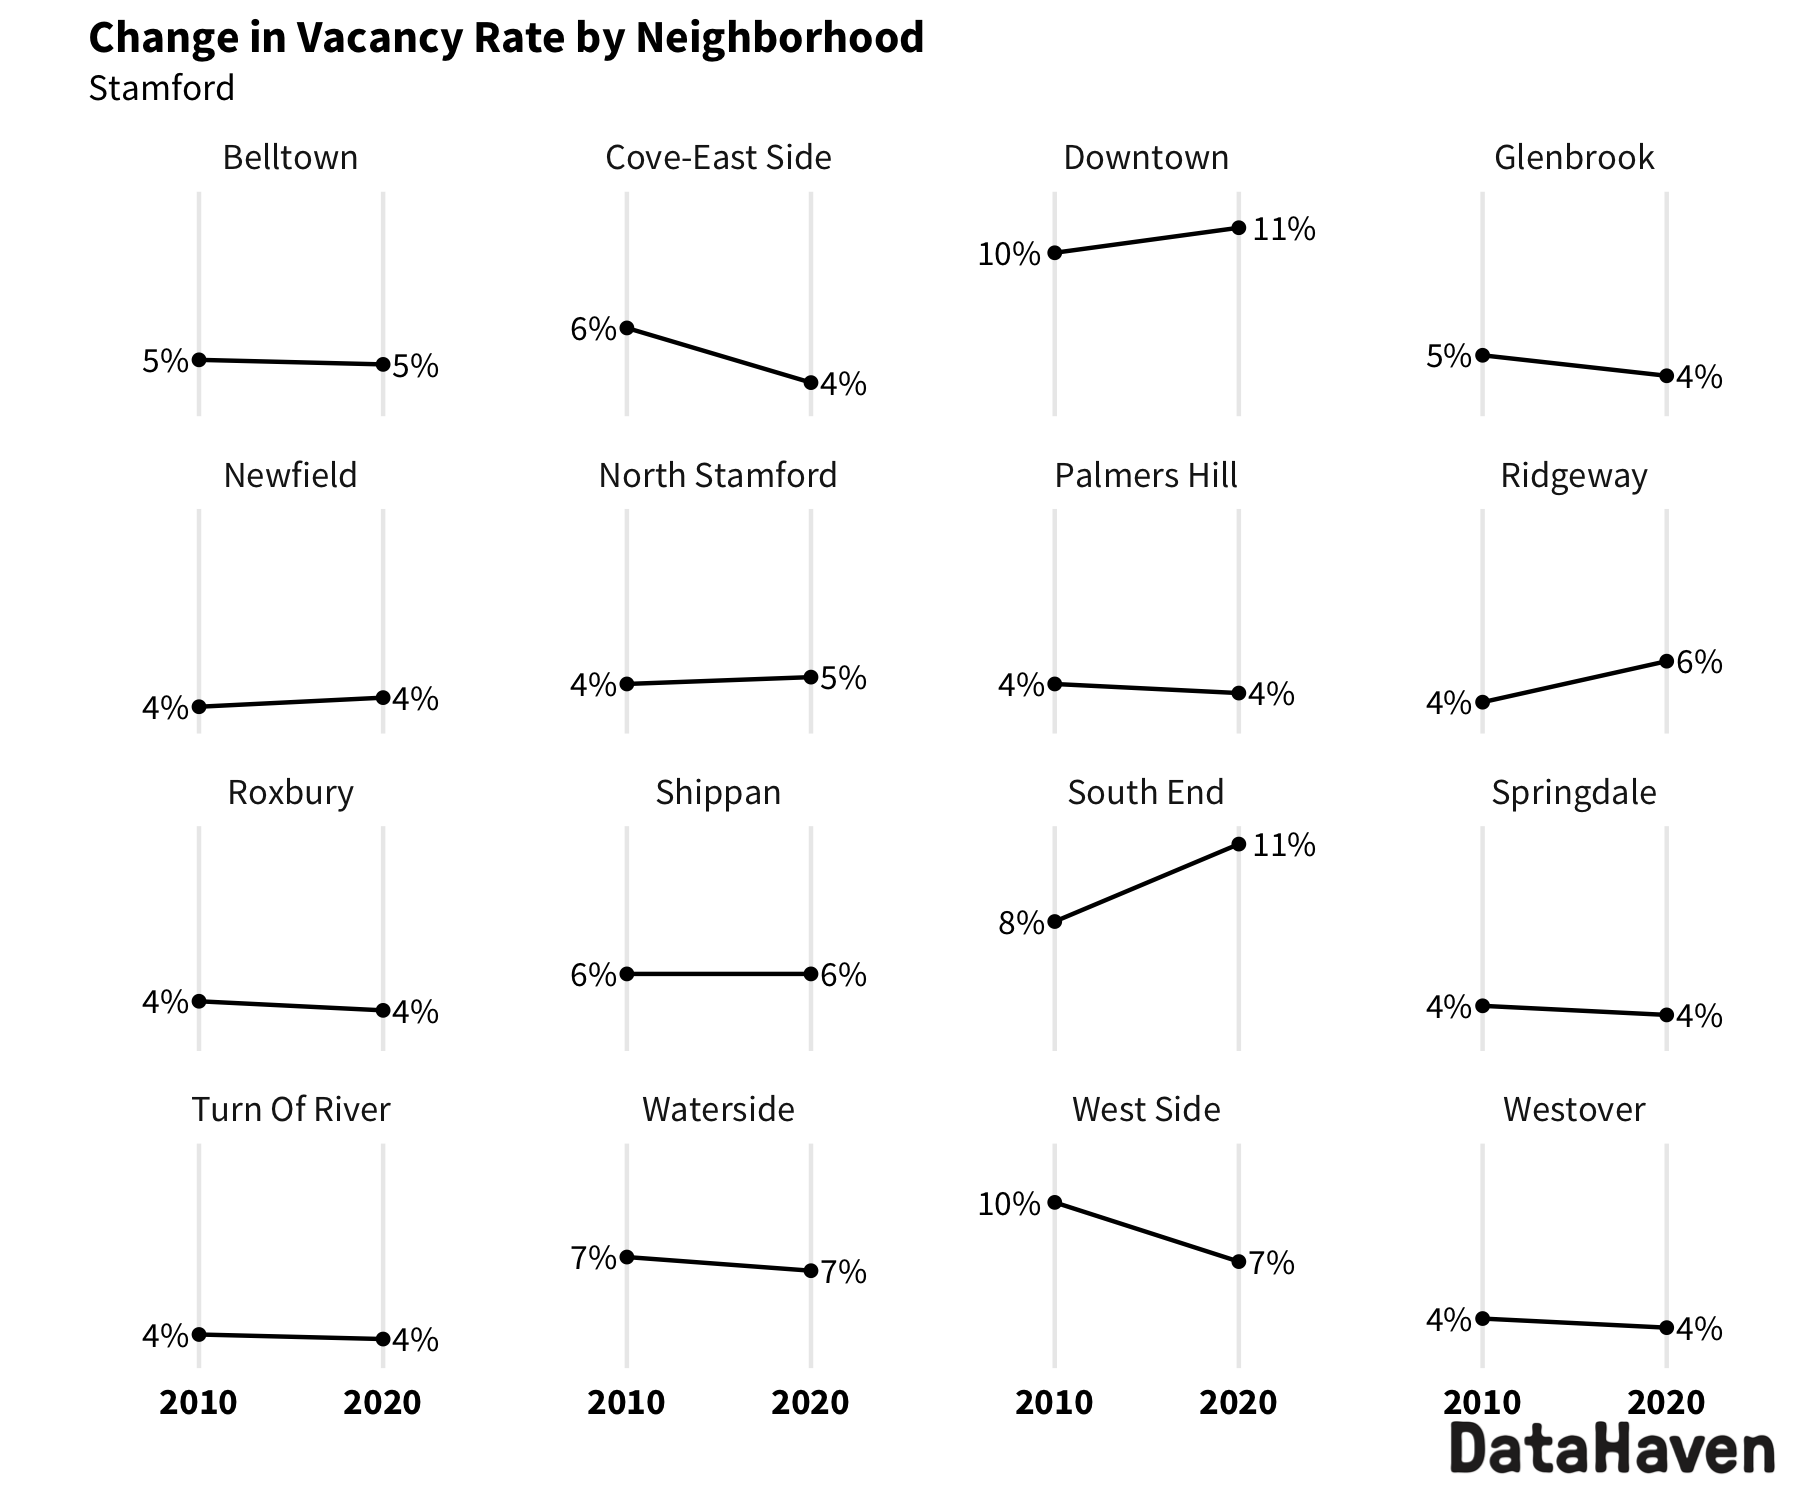 Stamford change in vacancy rate from 2010 to 2020 Census by neighborhood